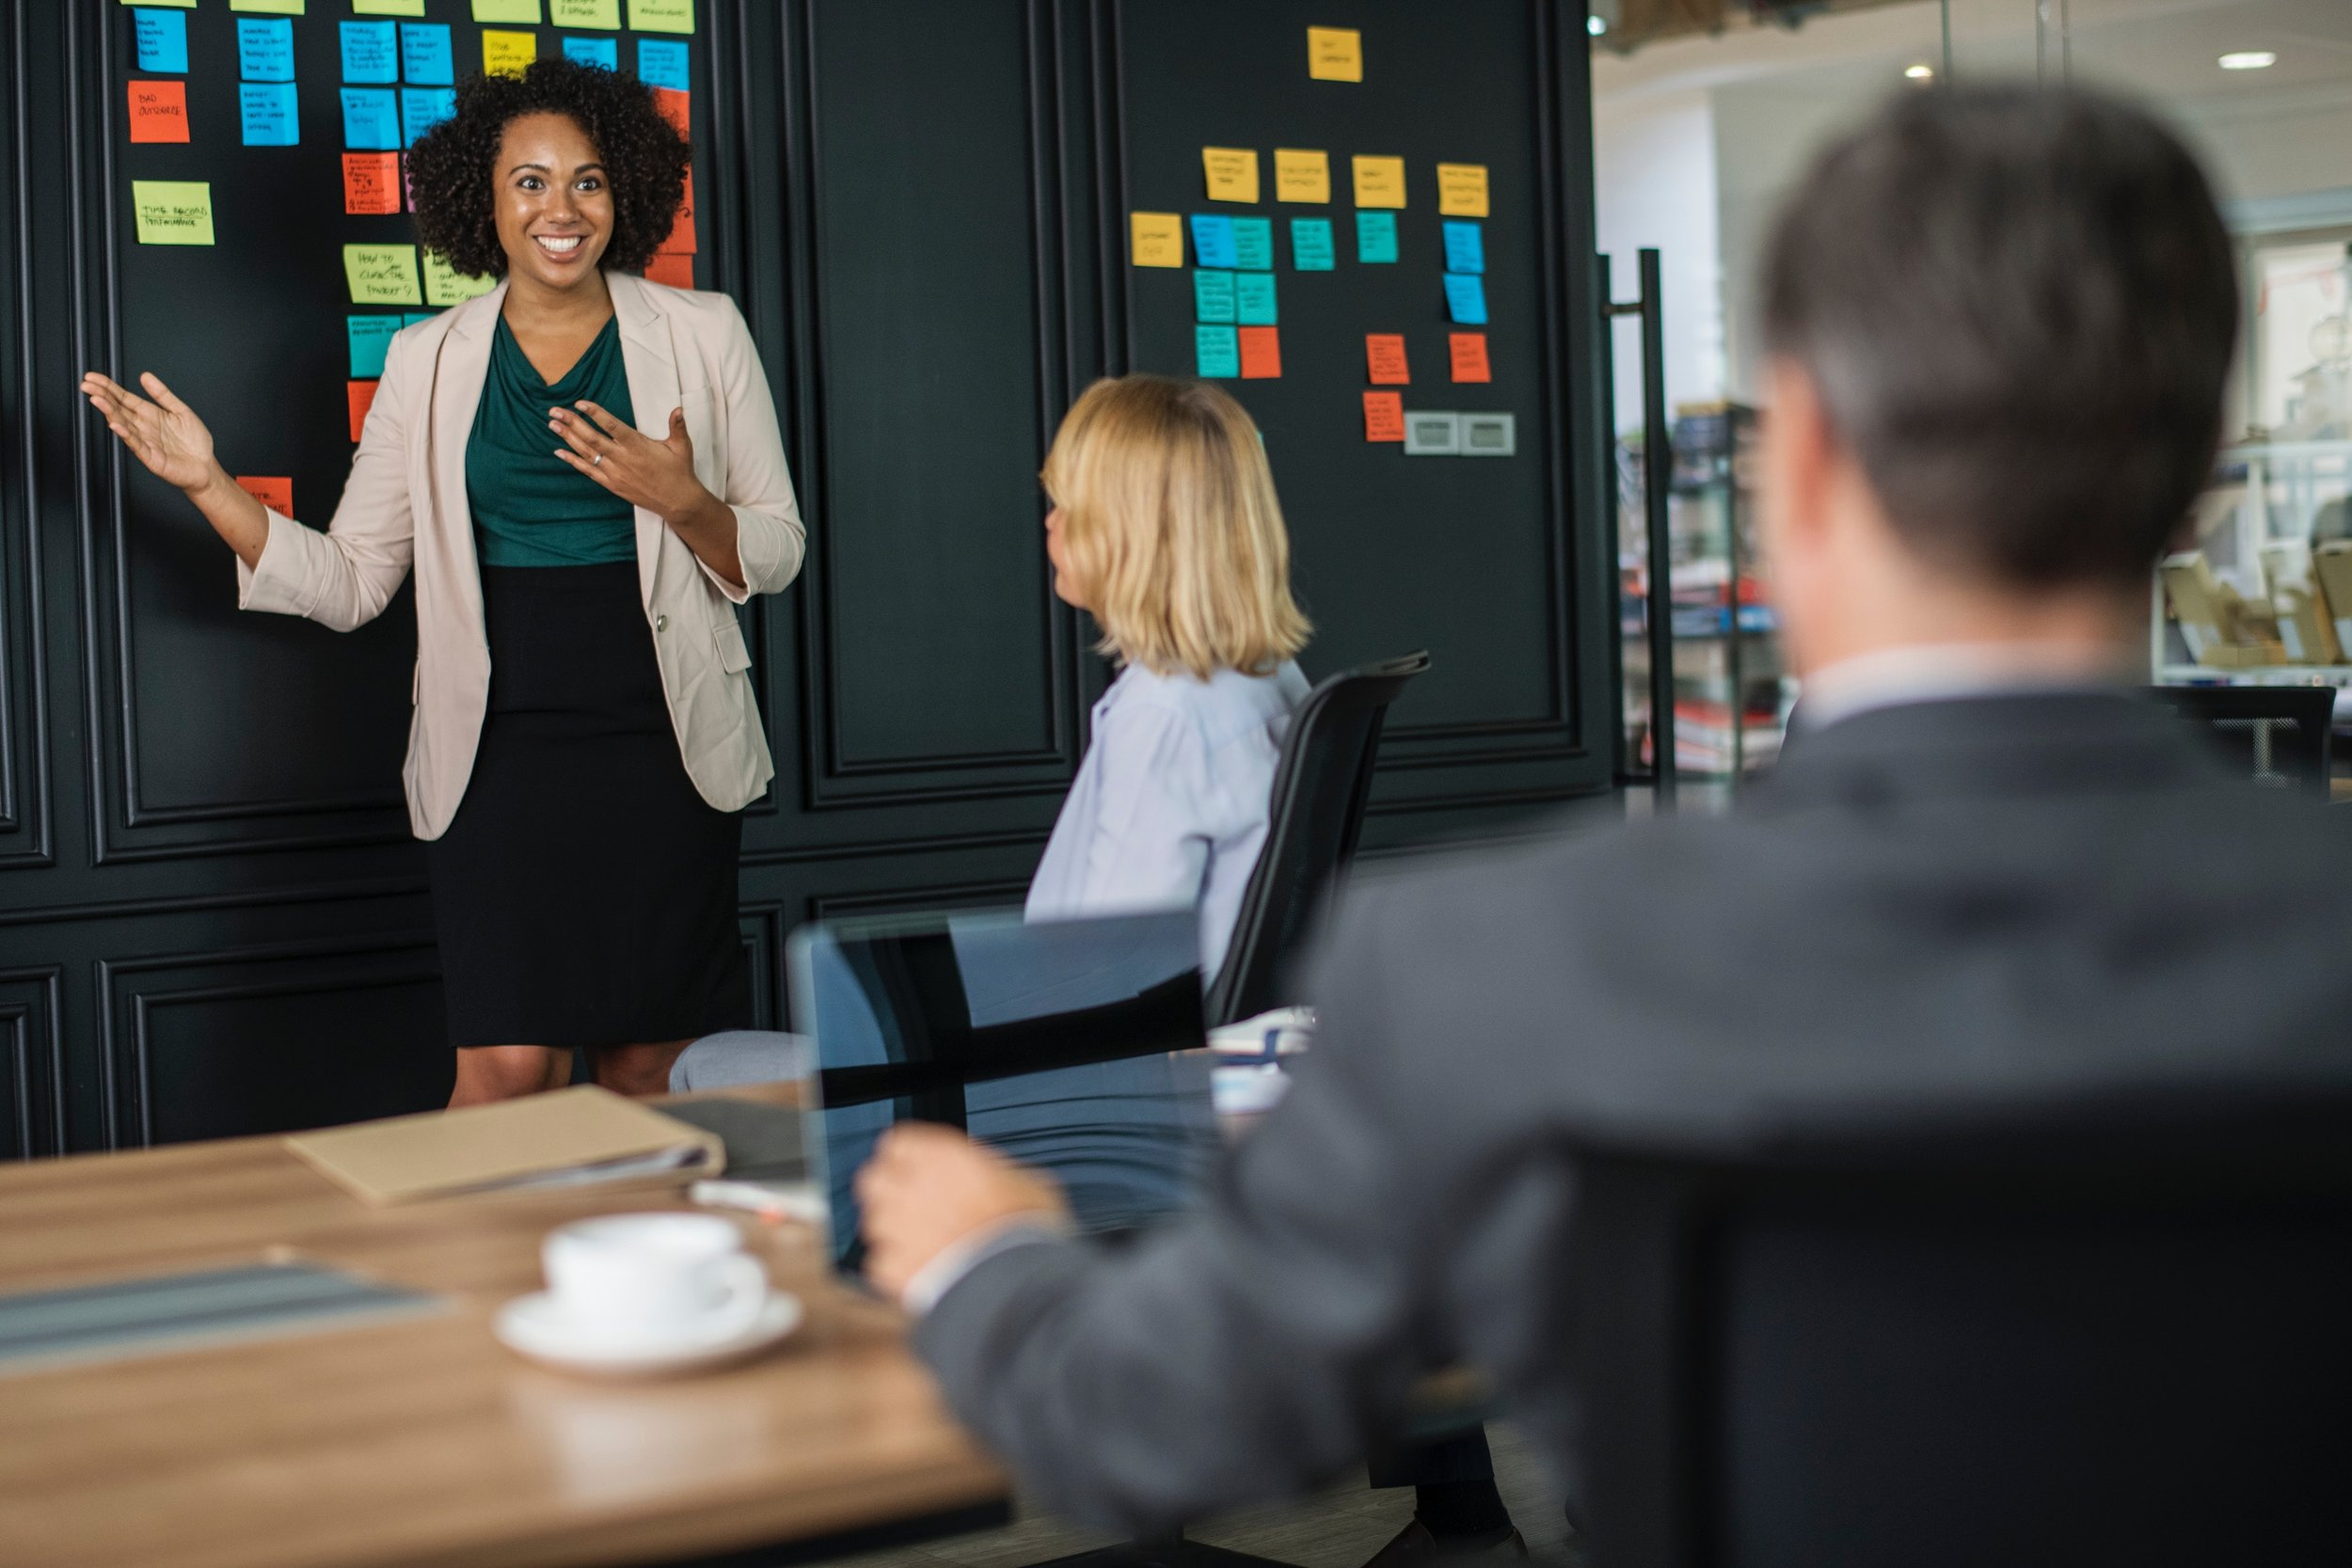 Creative Friction - The degree to which the team effectively expresses emotion, constructively manages conflict and converts friction into creativity.